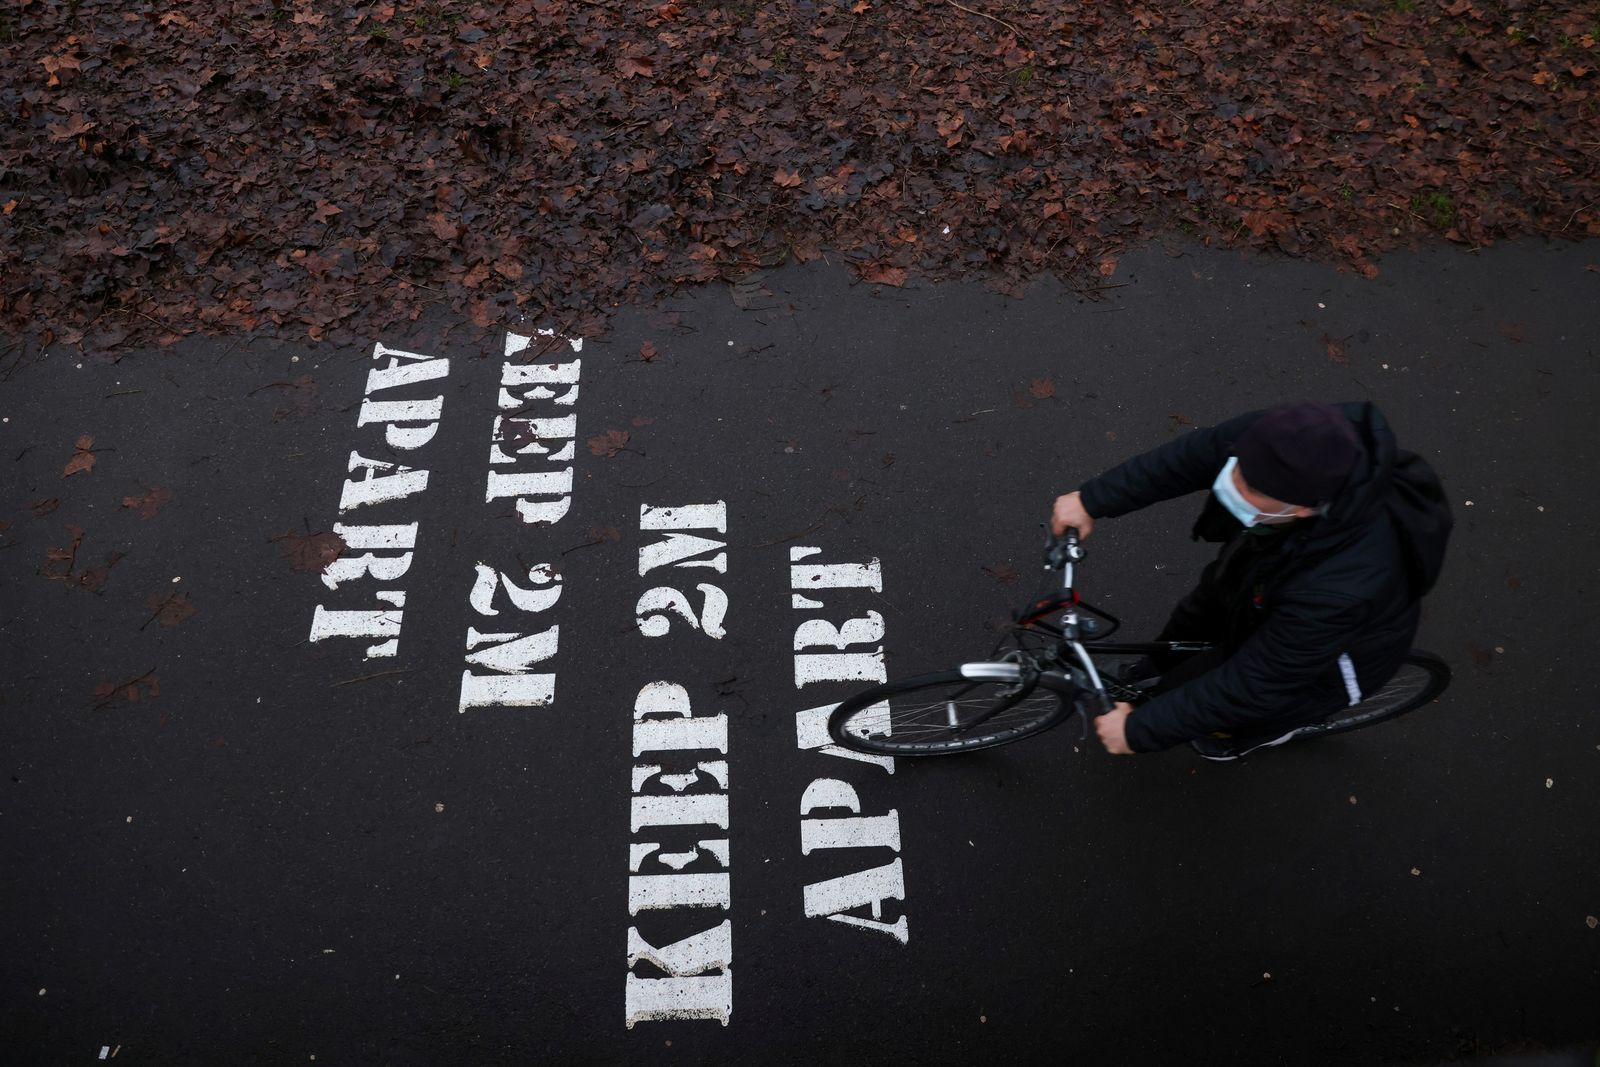 A man wearing a face mask rides a bike near a warning sign on Eel Brook Common